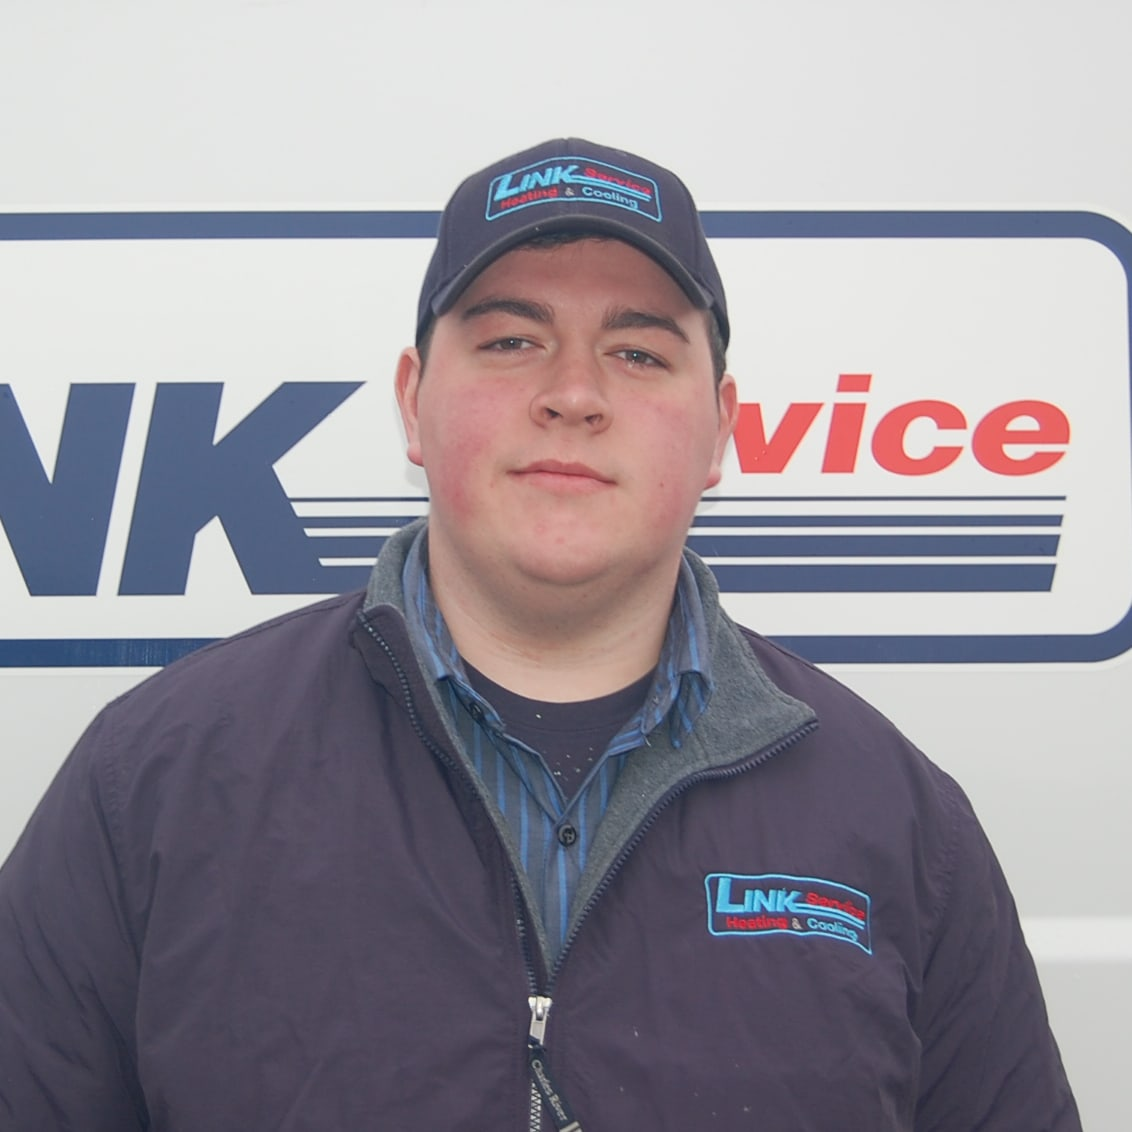 Noah E. of Link Service Heating & Cooling.